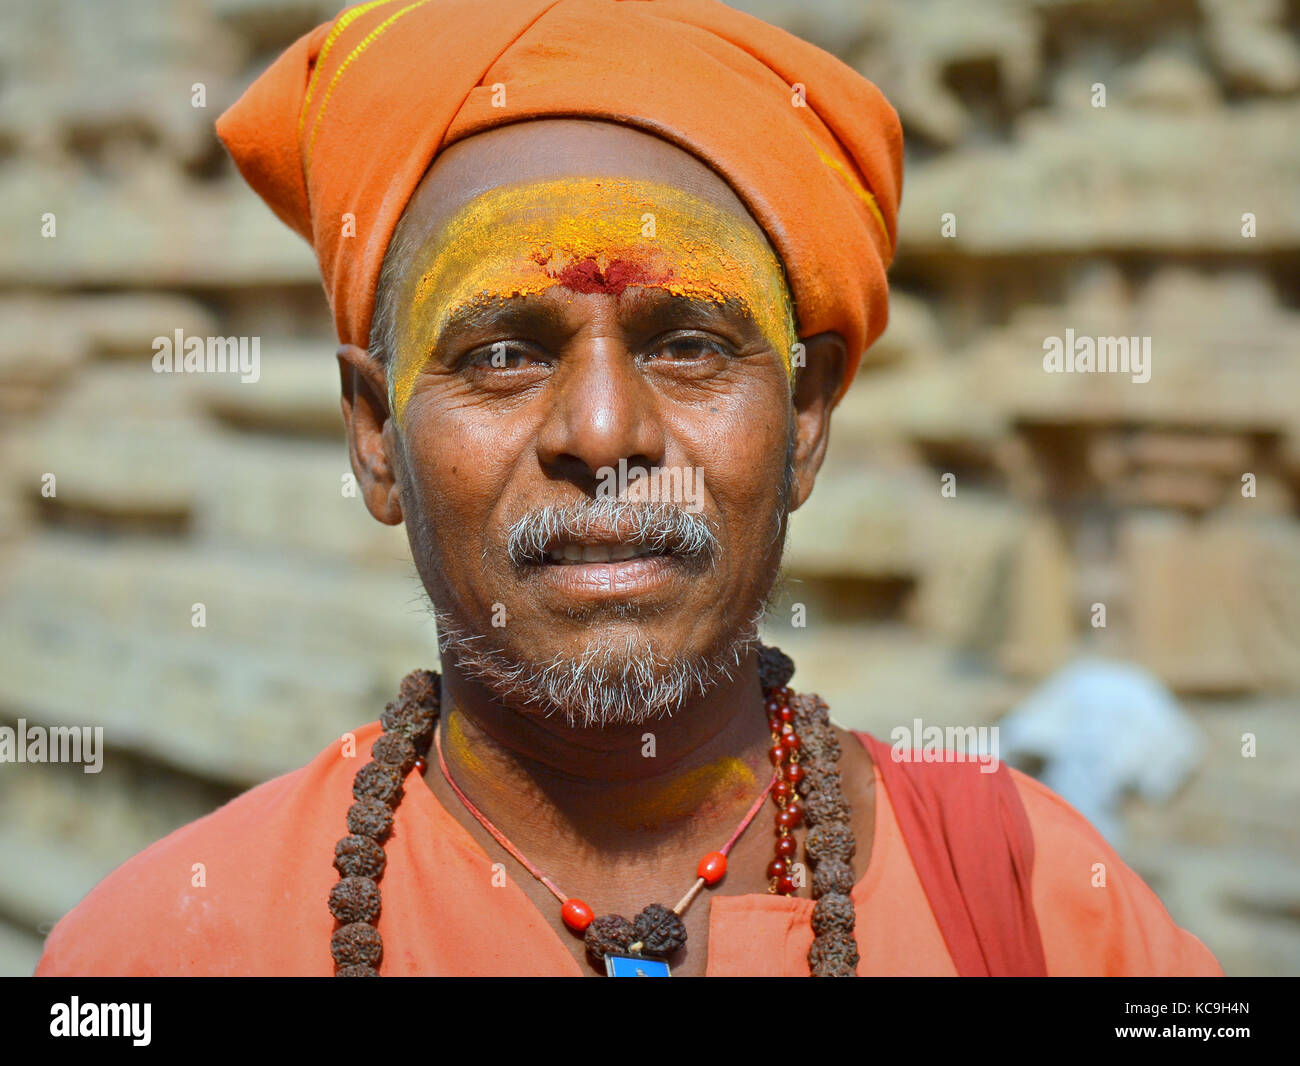 Middle-aged Shaivite sadhu with orange turban, red tilaka mark and yellow sandalwood paste on his forehead, rudraksha - Stock Image